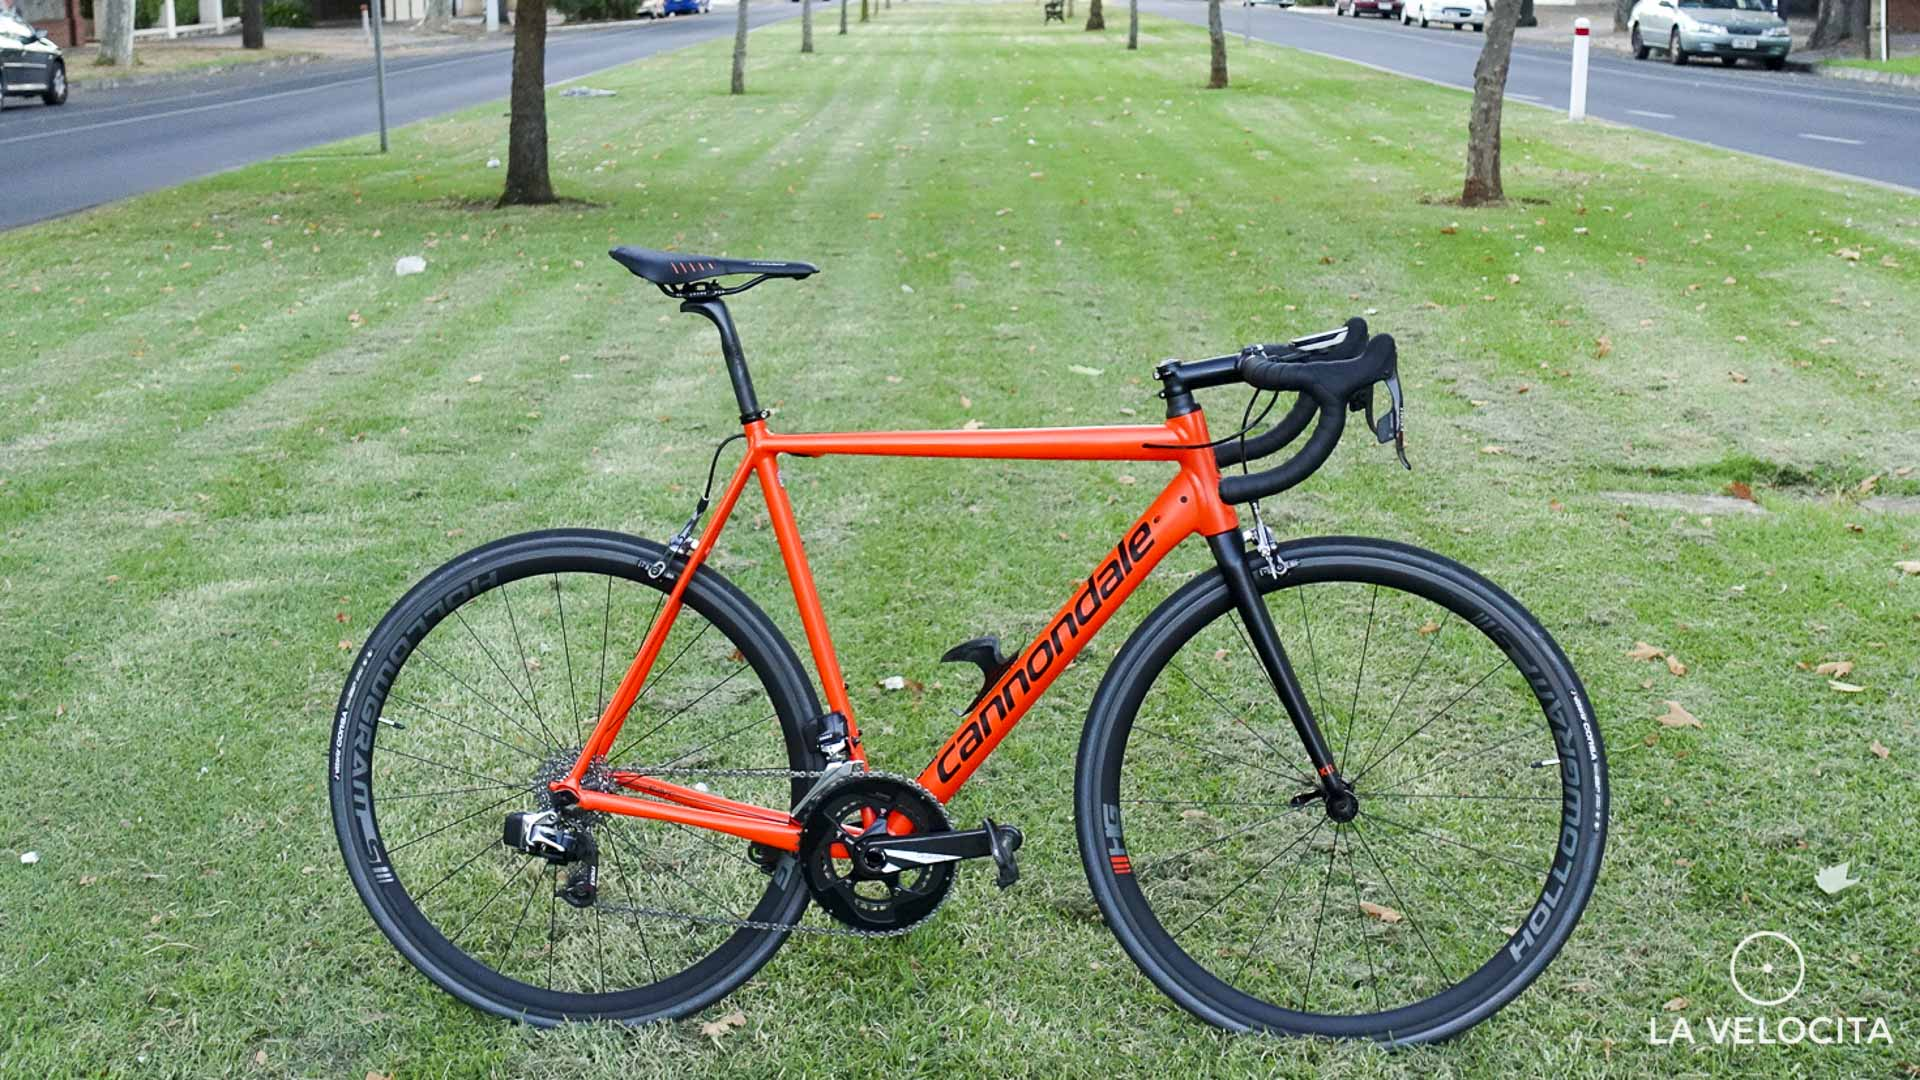 Cannondale CAAD12 Red eTap review - LA VELOCITA